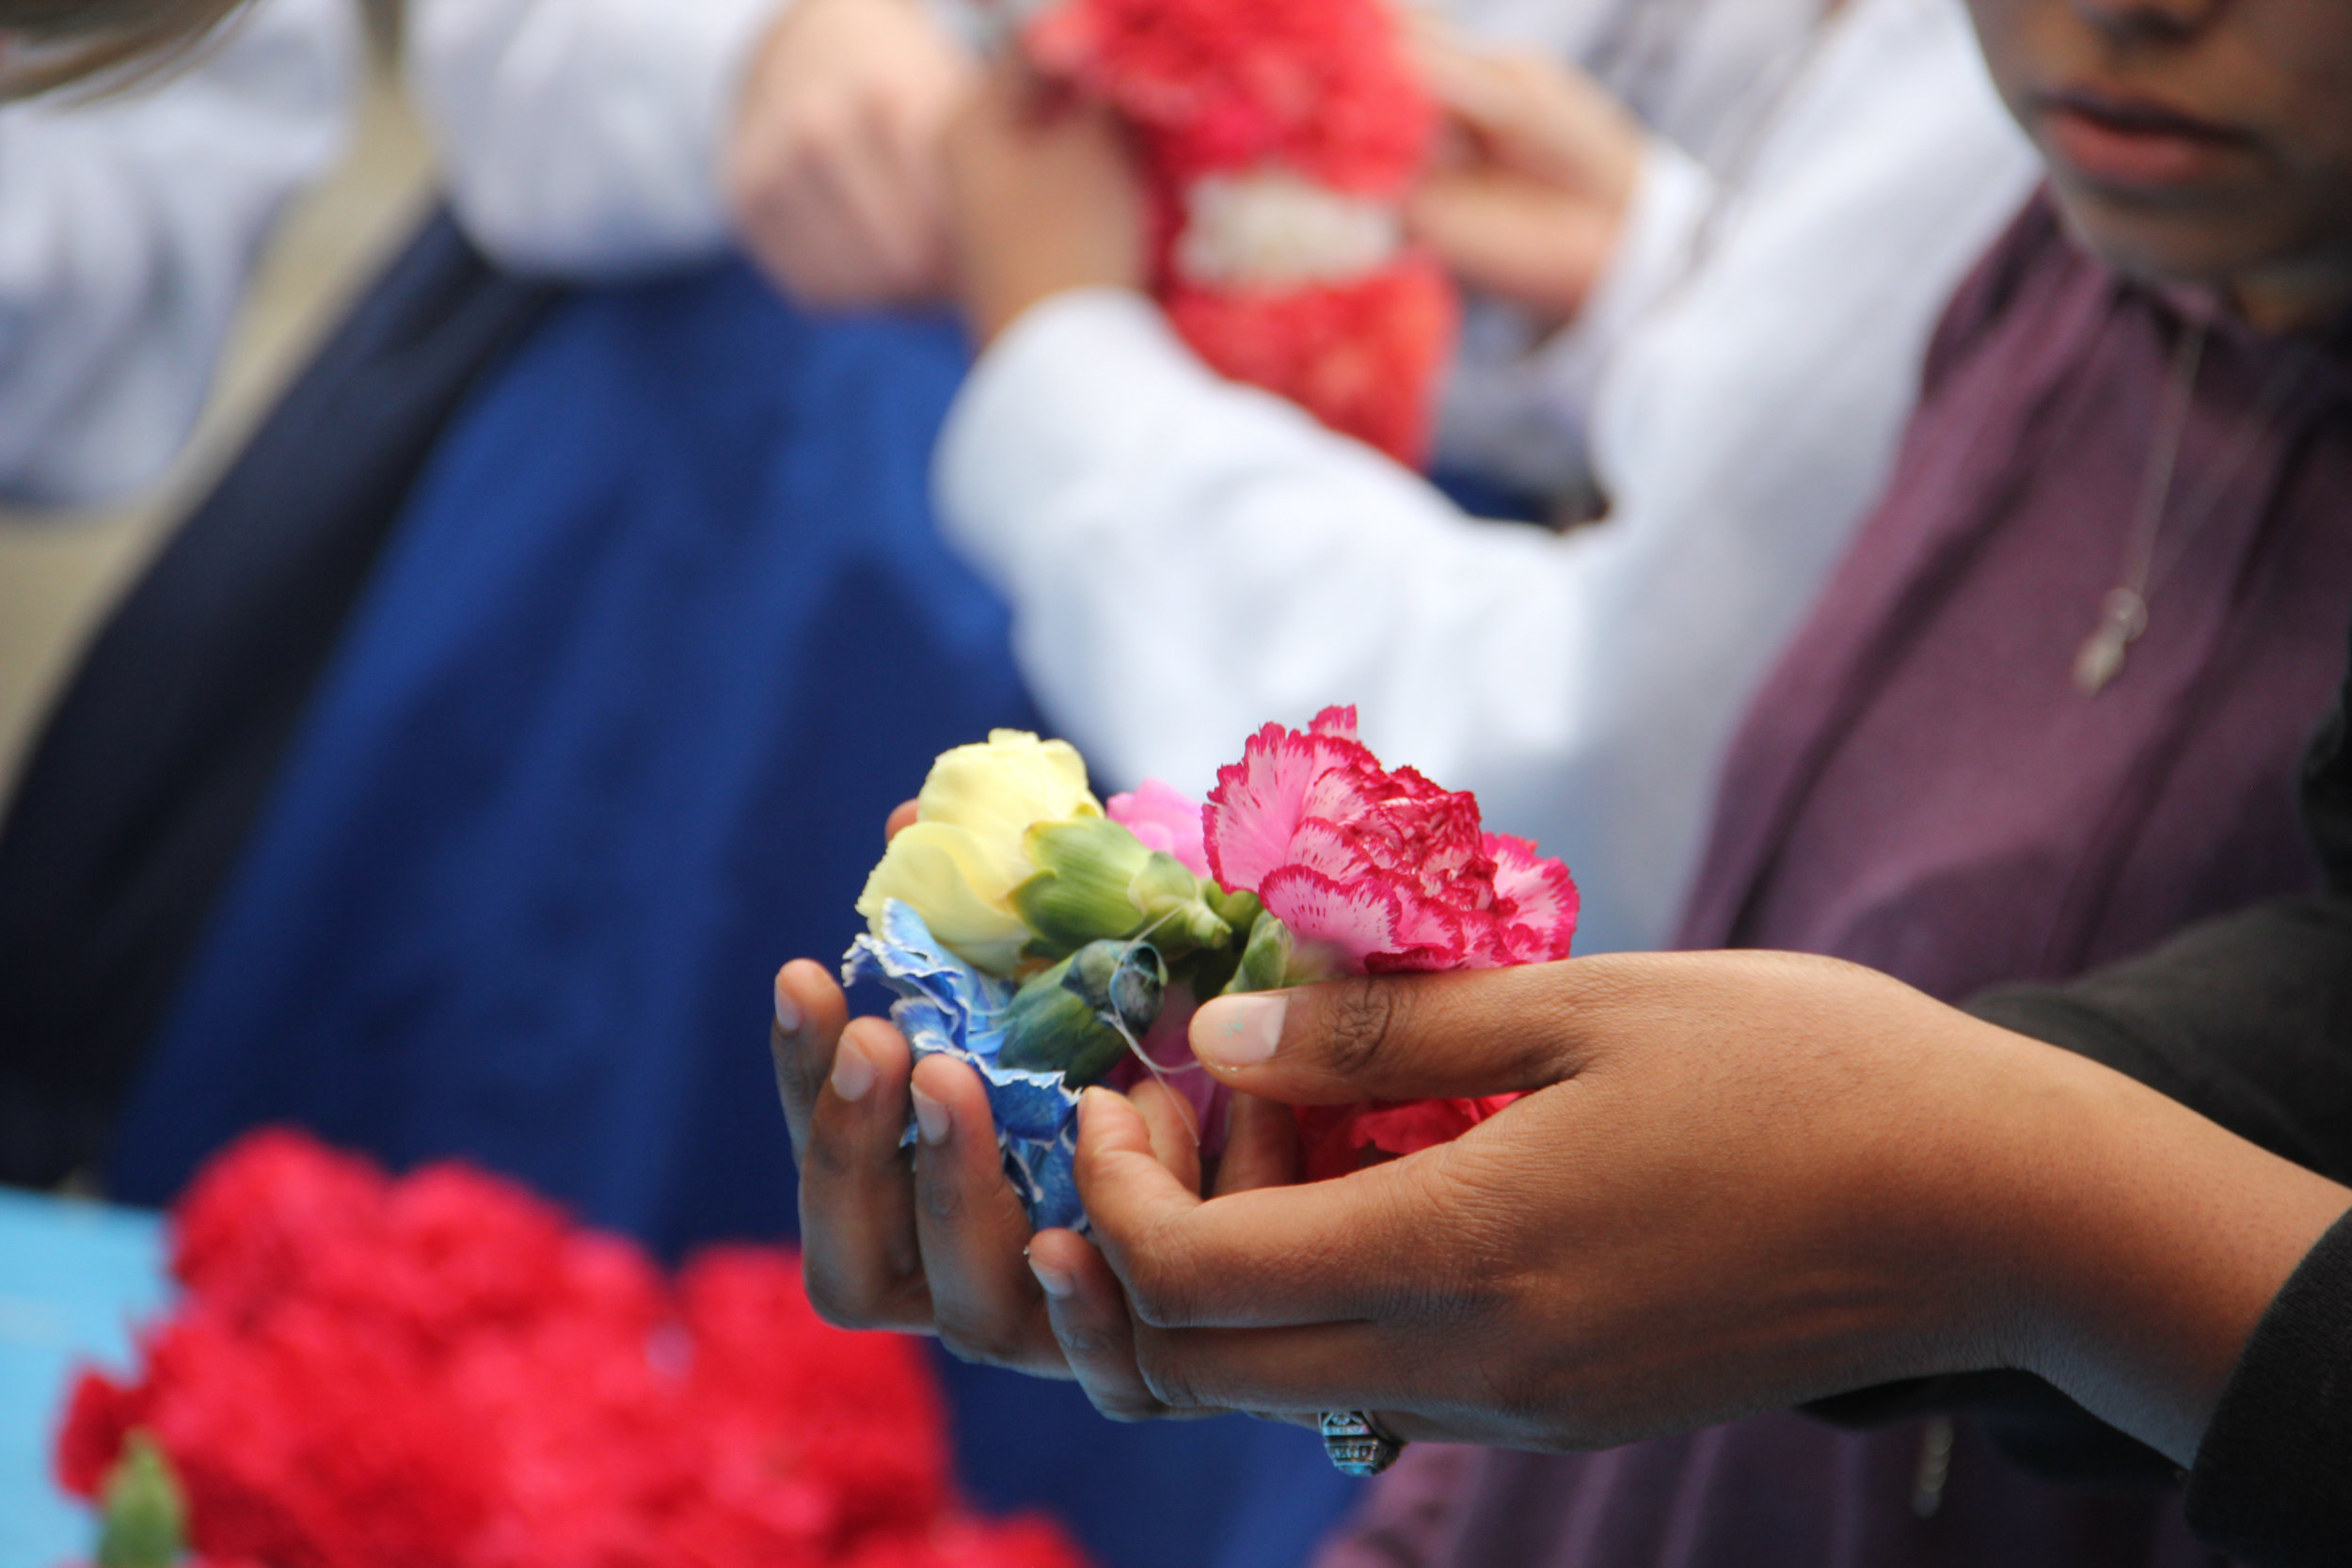 PHOTOS BY NATHAN ACUÑA LEI YOUR LOVE: WC community members gathered around a table to craft dozens of leis of soft-toned flowers.